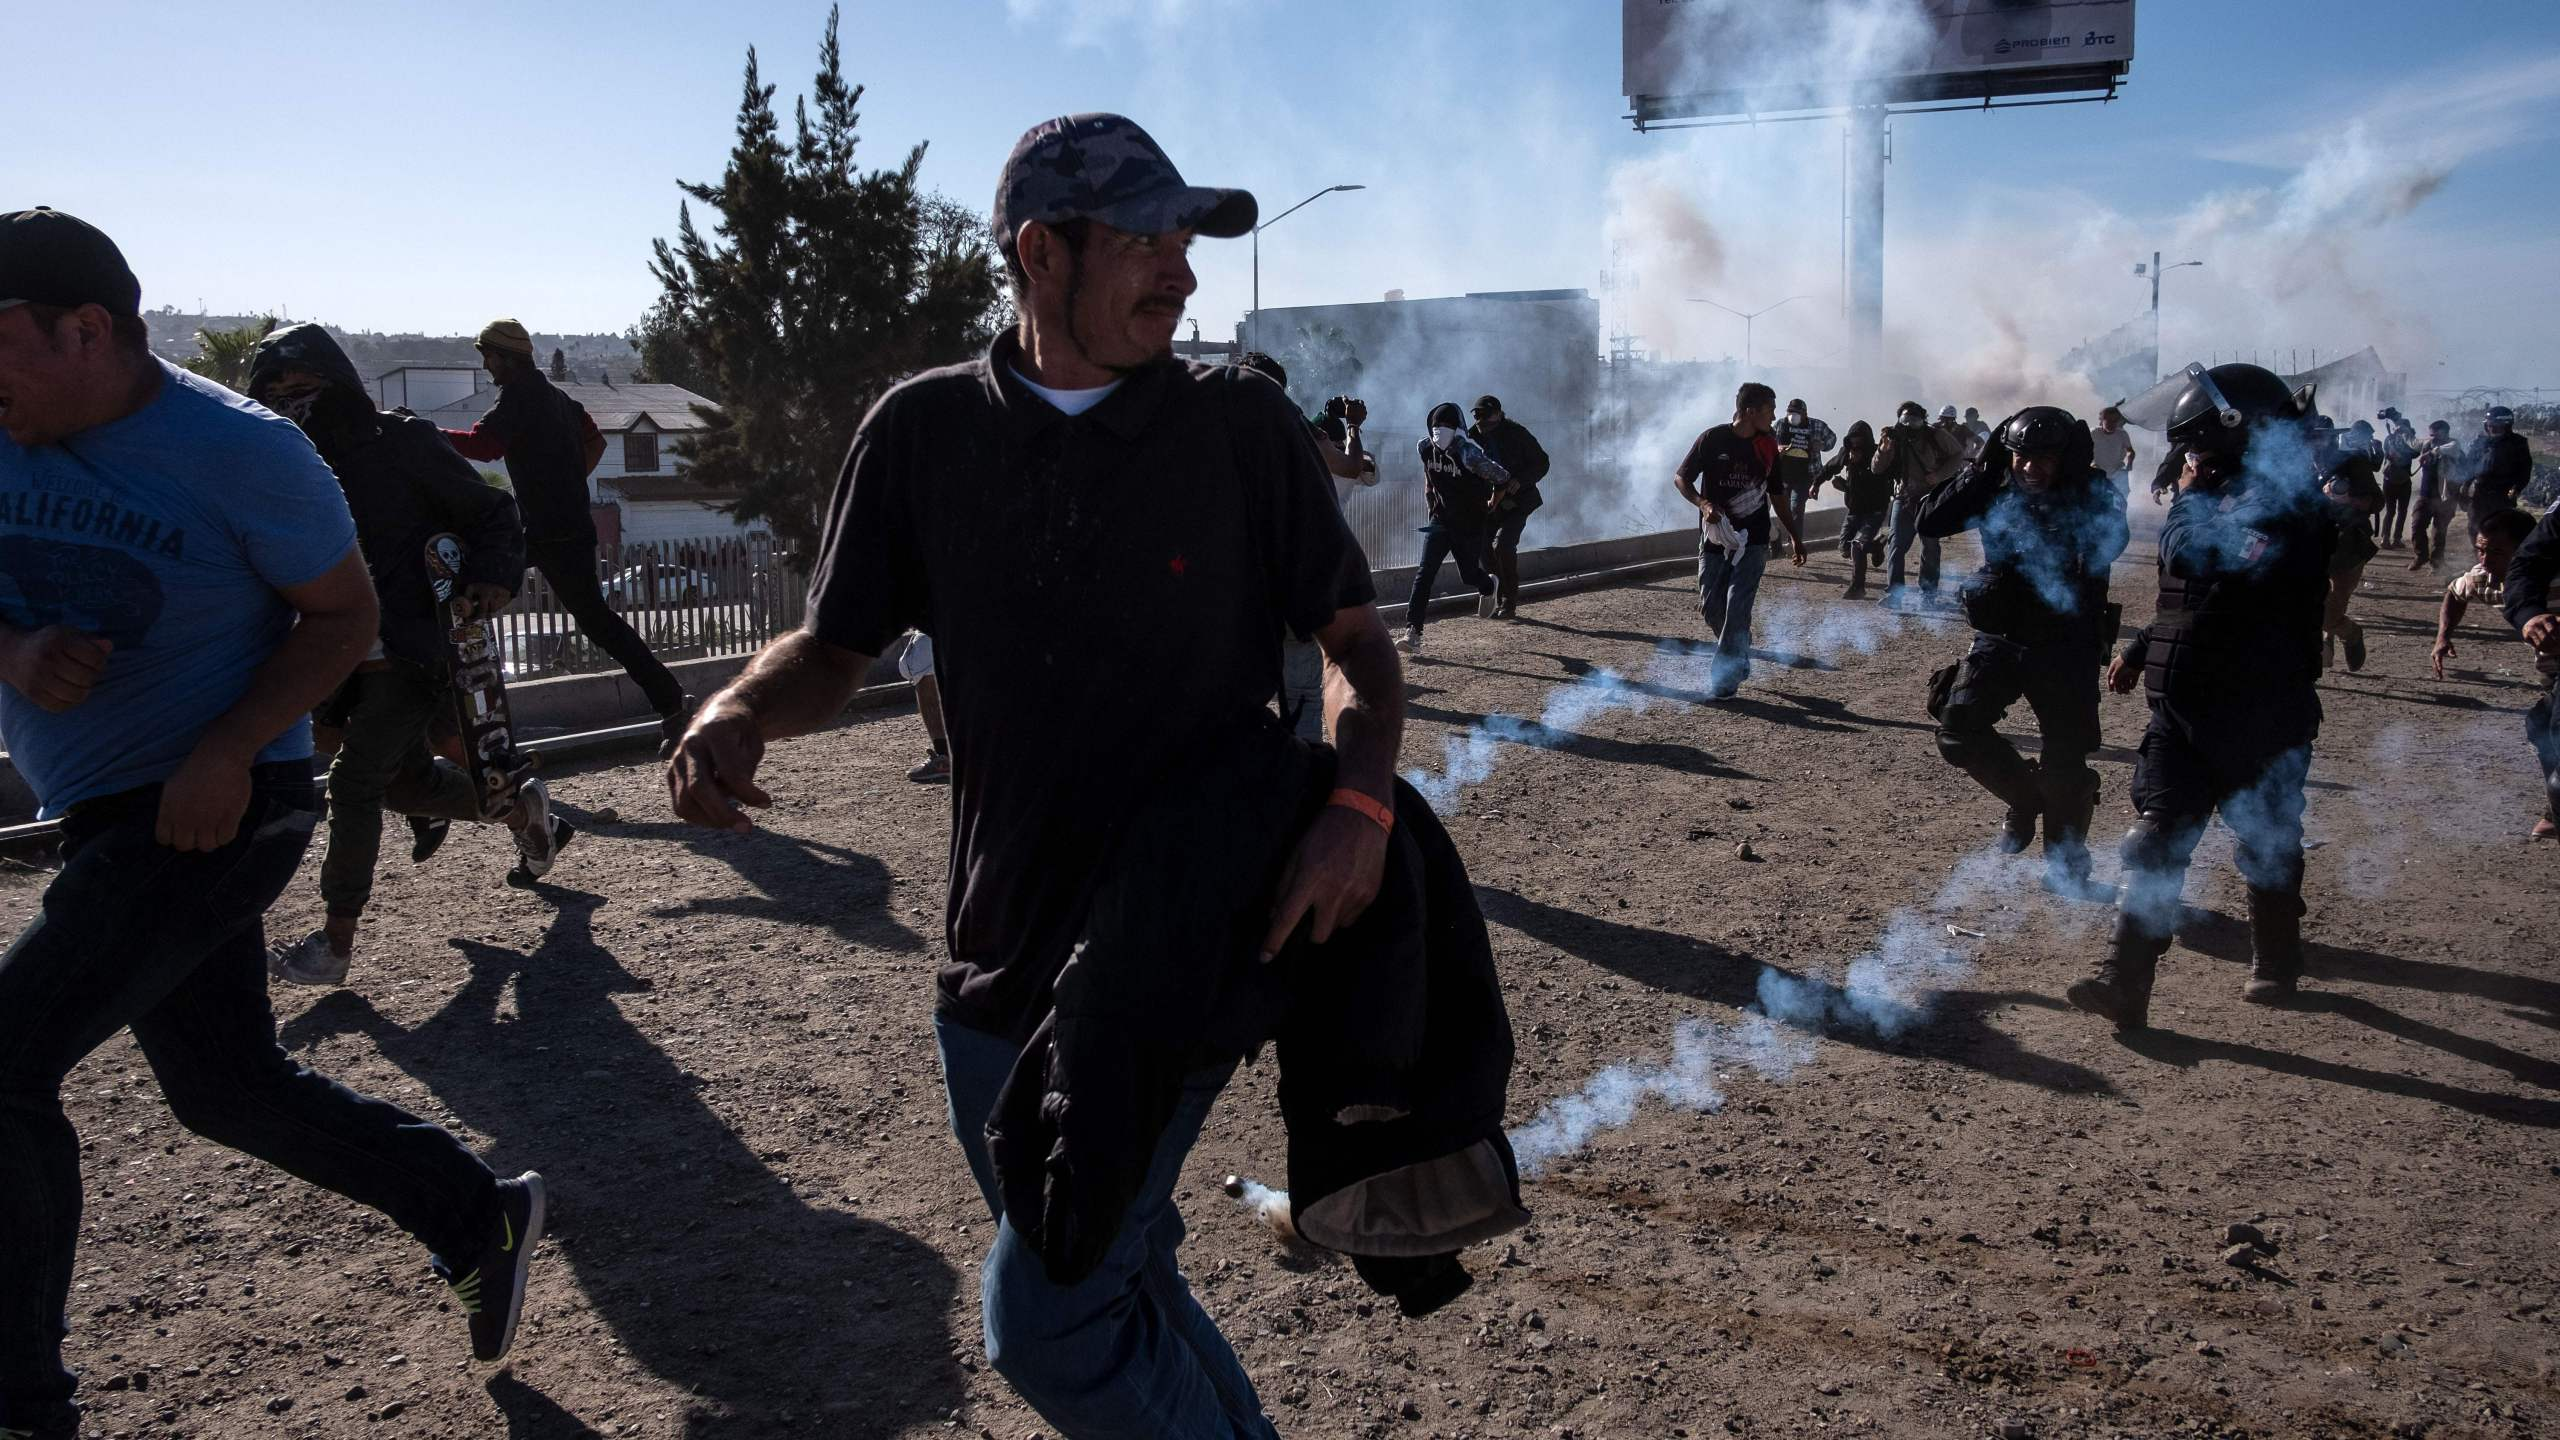 Central American migrants -mostly Hondurans- run along the Tijuana River near the El Chaparral border crossing in Tijuana, Baja California State, Mexico, near US-Mexico border, after the US border patrol threw tear gas from the distance to disperse them after an alleged verbal dispute, on November 25, 2018. (Credit: GUILLERMO ARIAS/AFP/Getty Images)